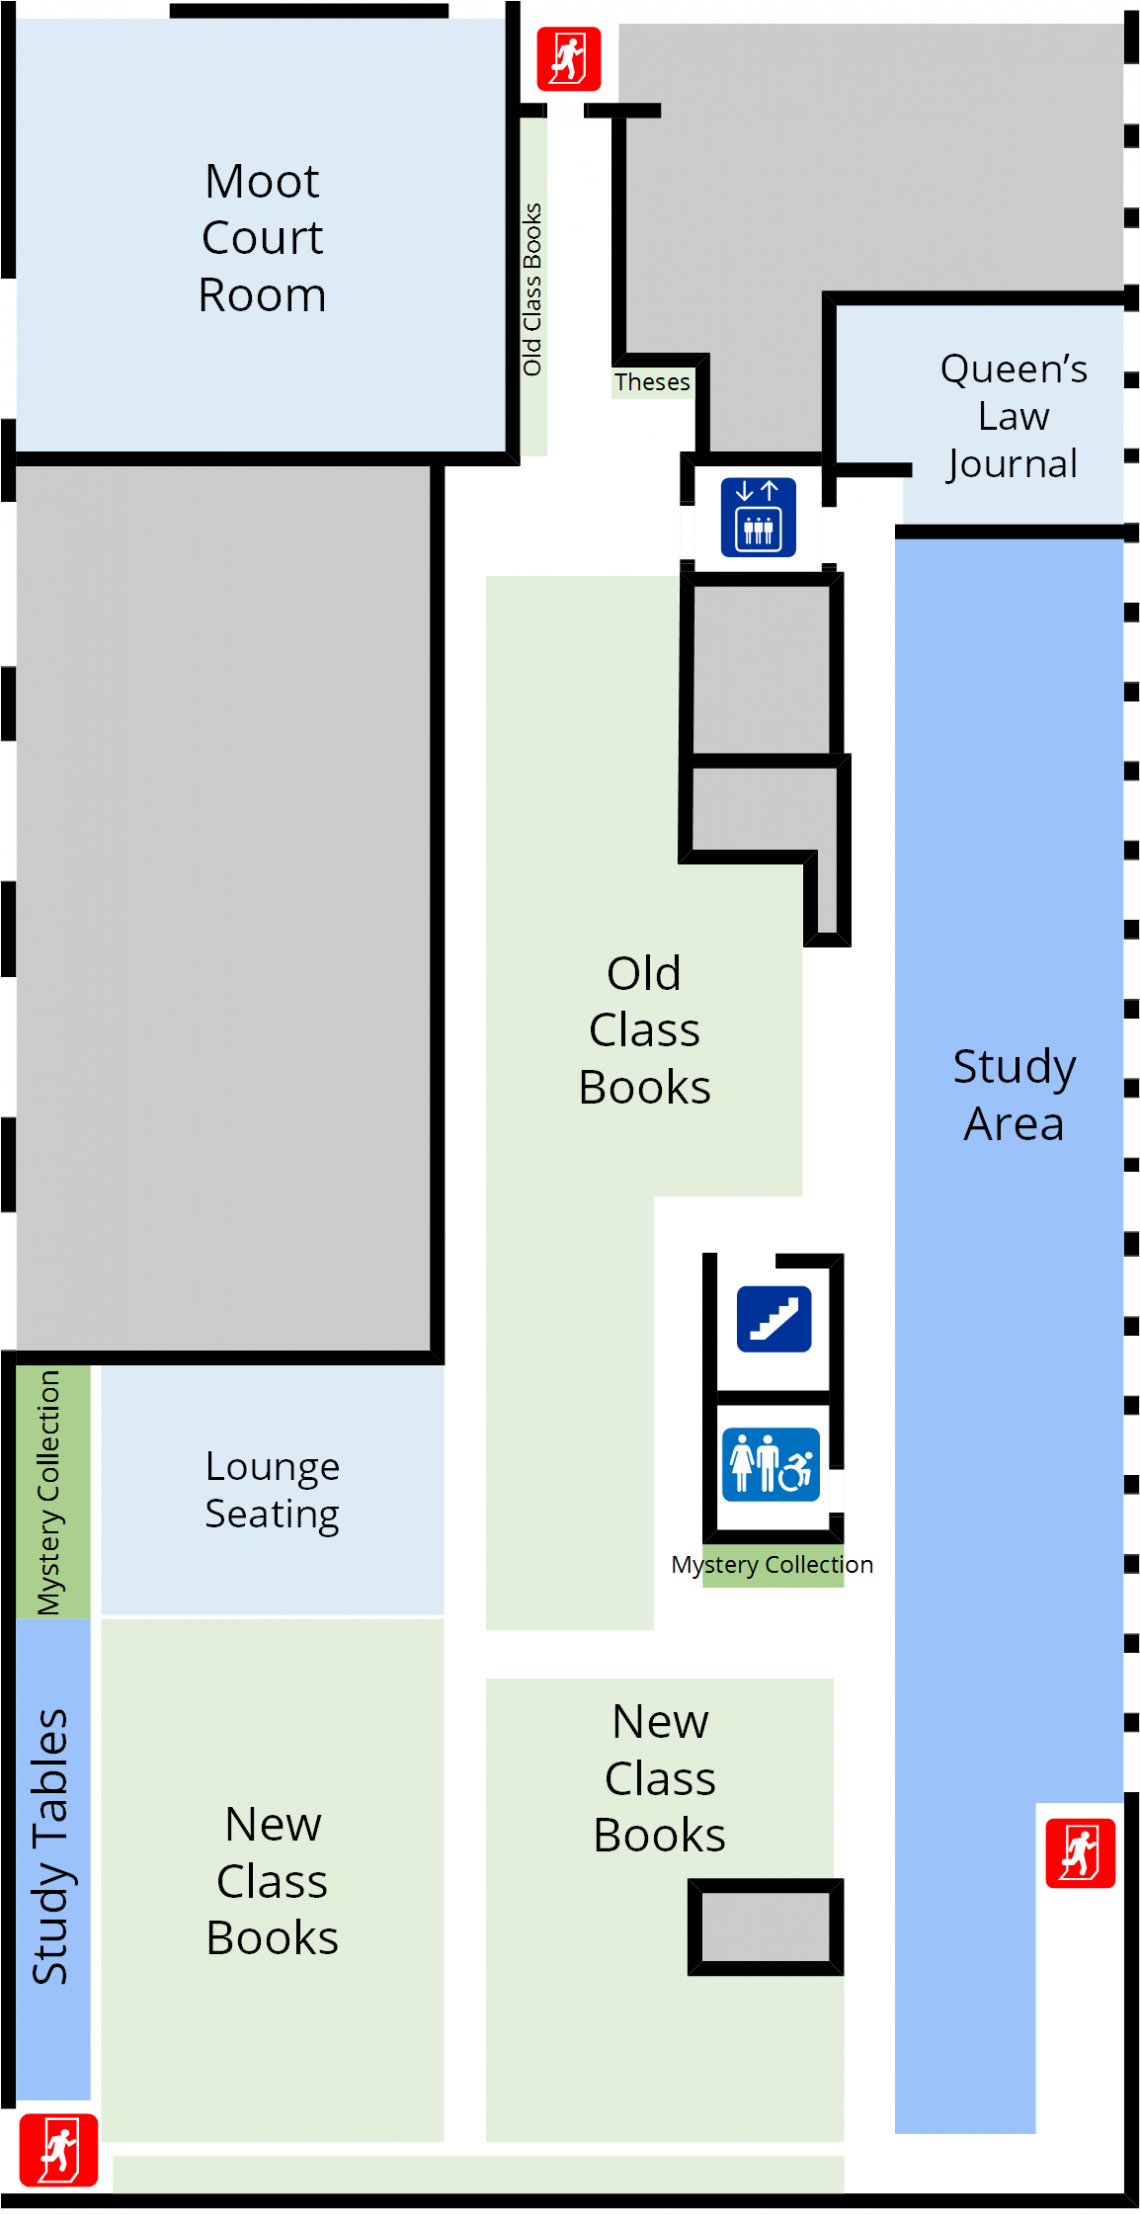 Lederman Law Library Second Floor Floorplan